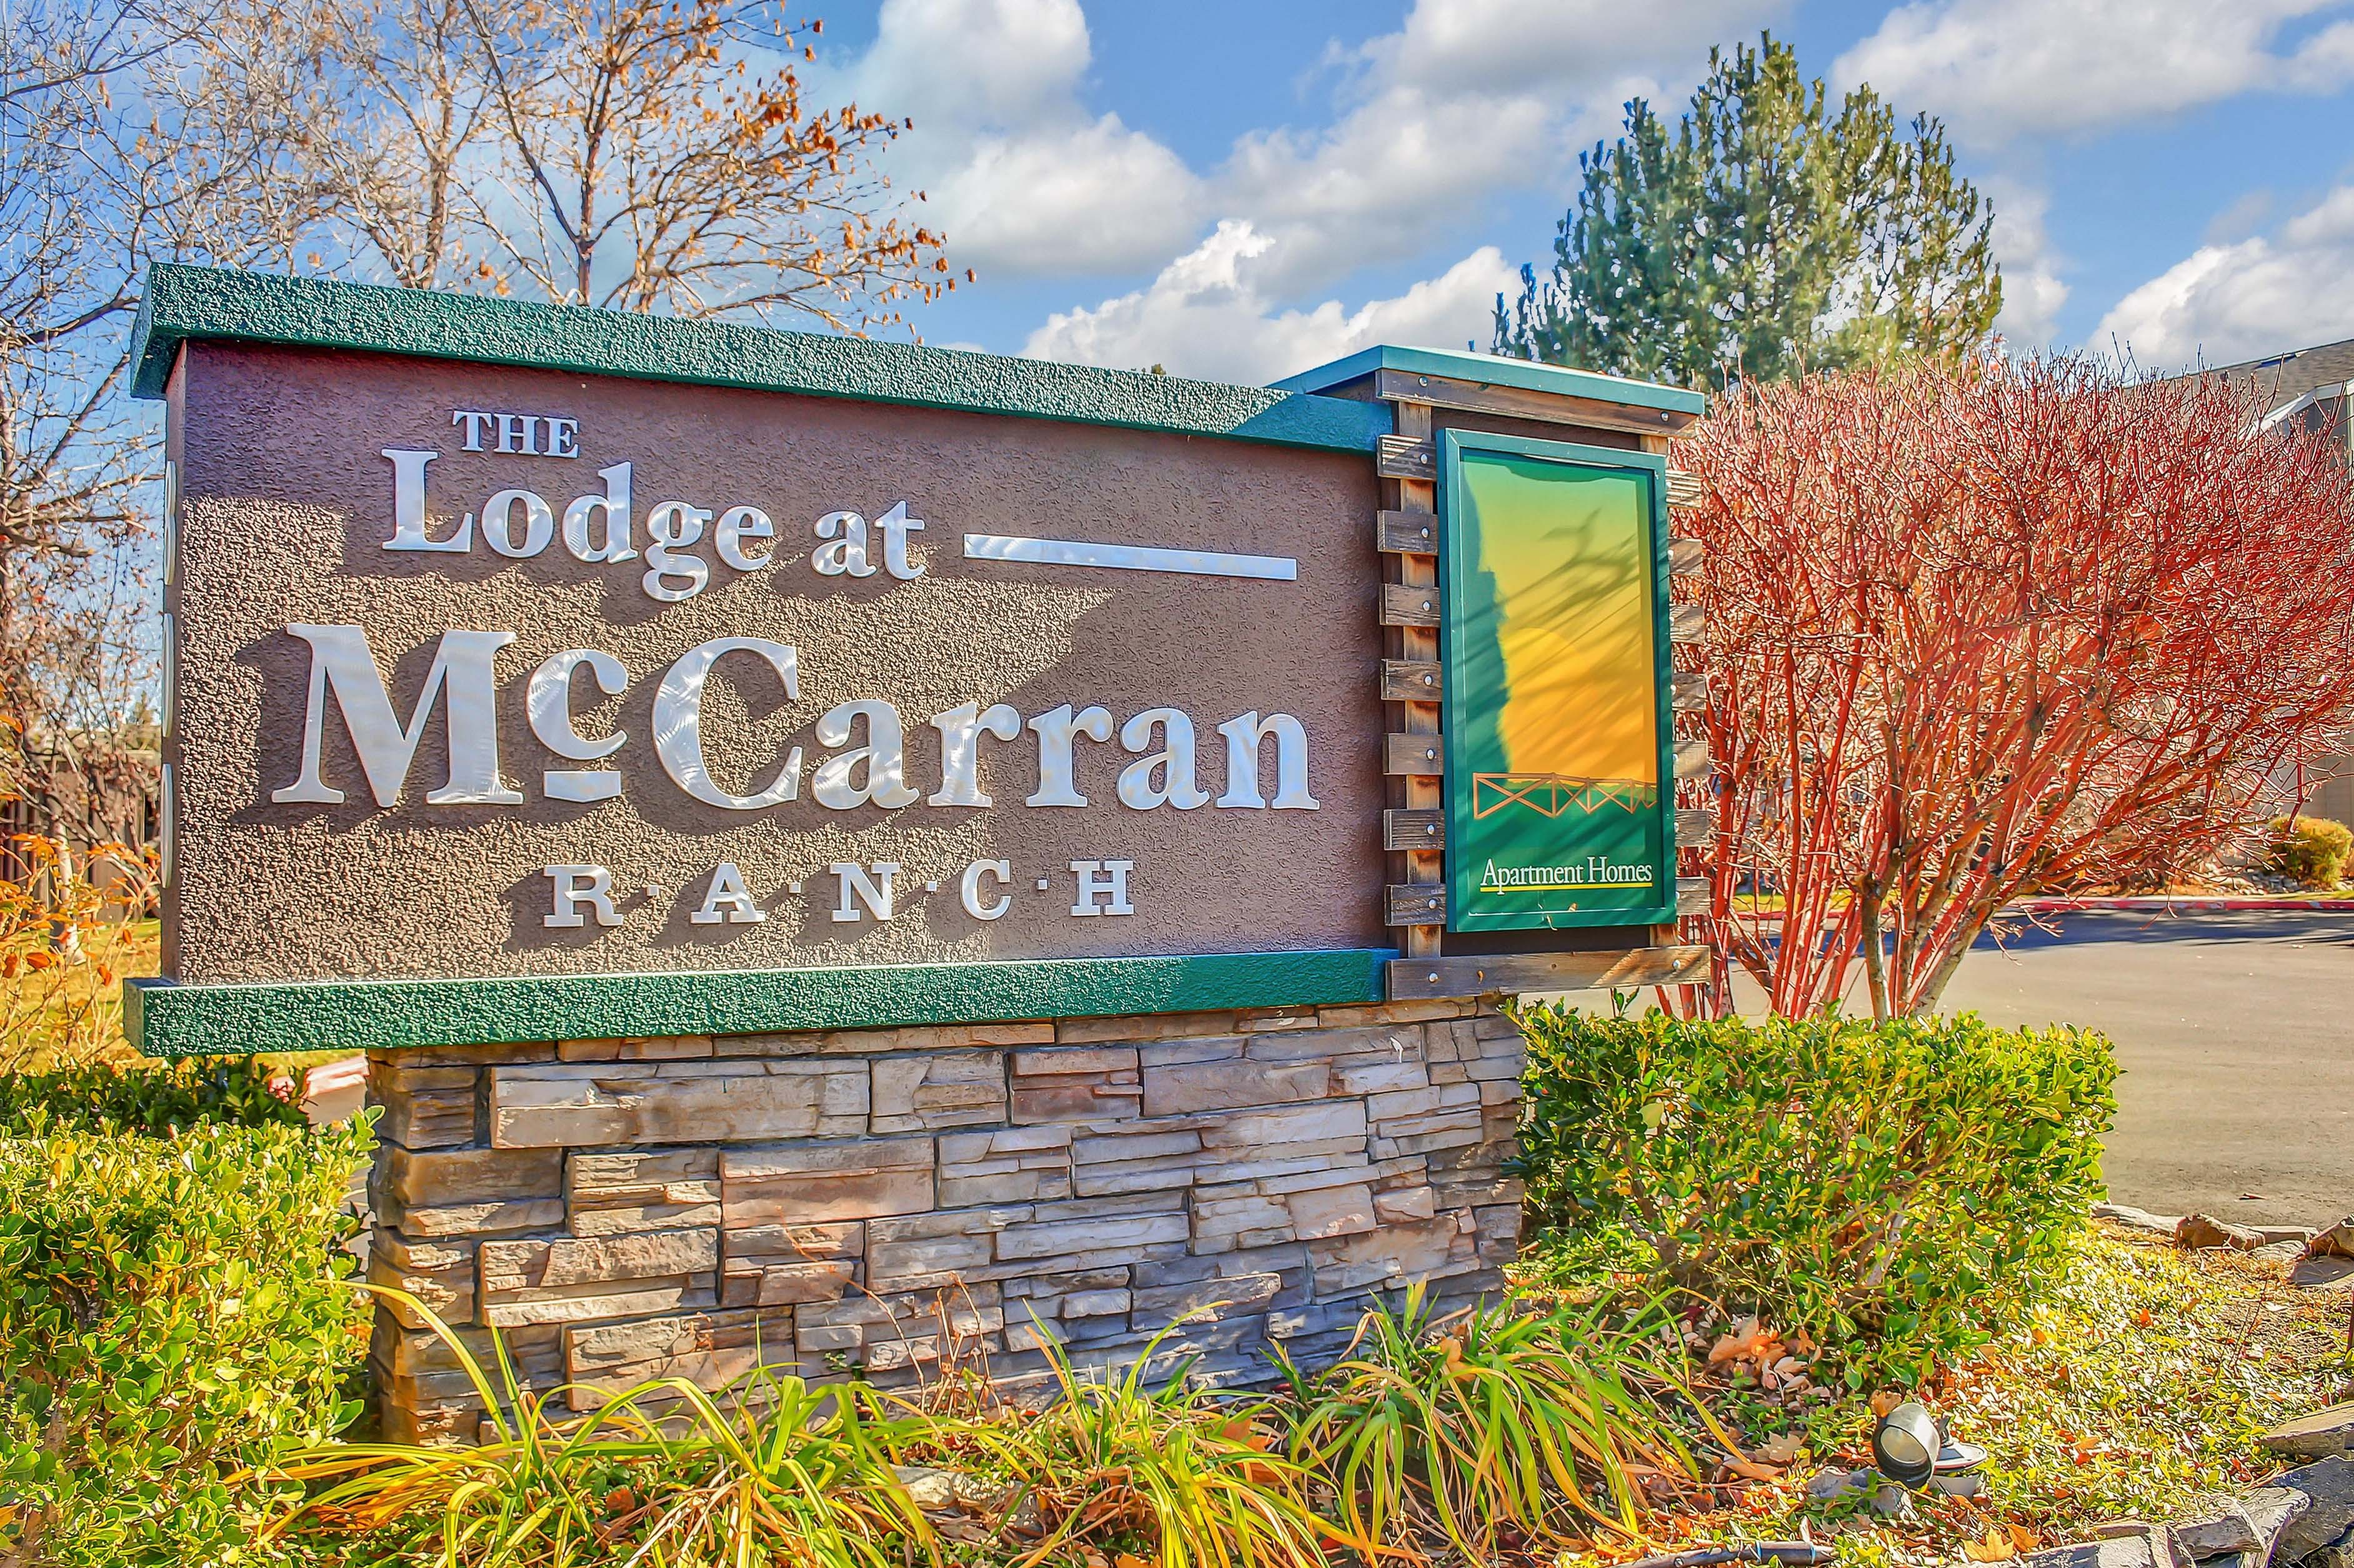 The Lodge at McCarran Ranch - The Lodge offers a host of amenities